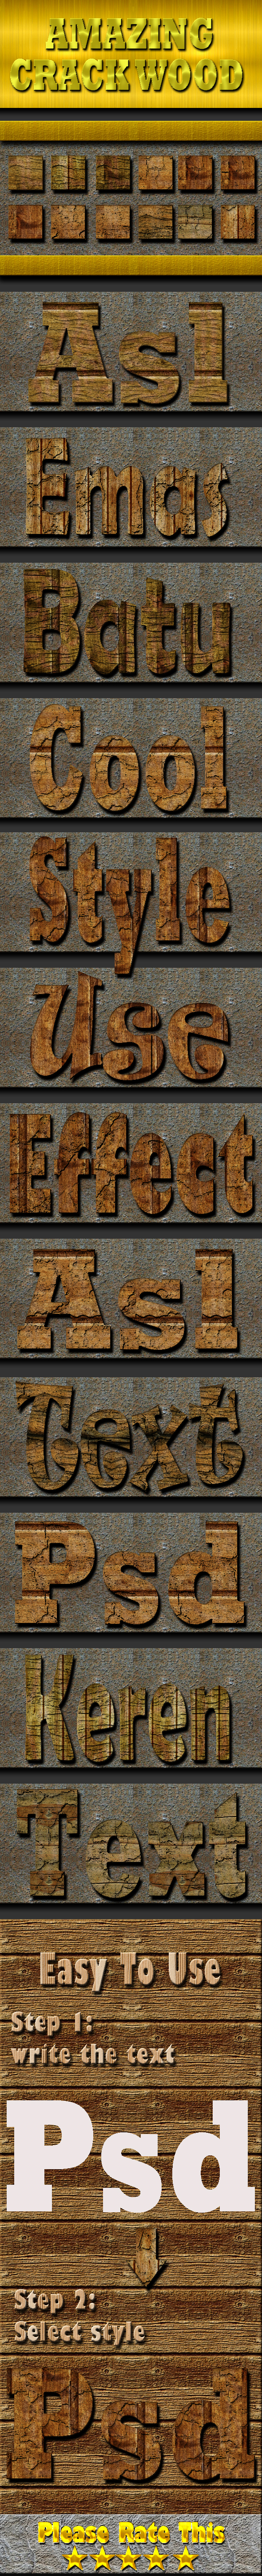 Cracked Wood Text Effect Style - Styles Photoshop